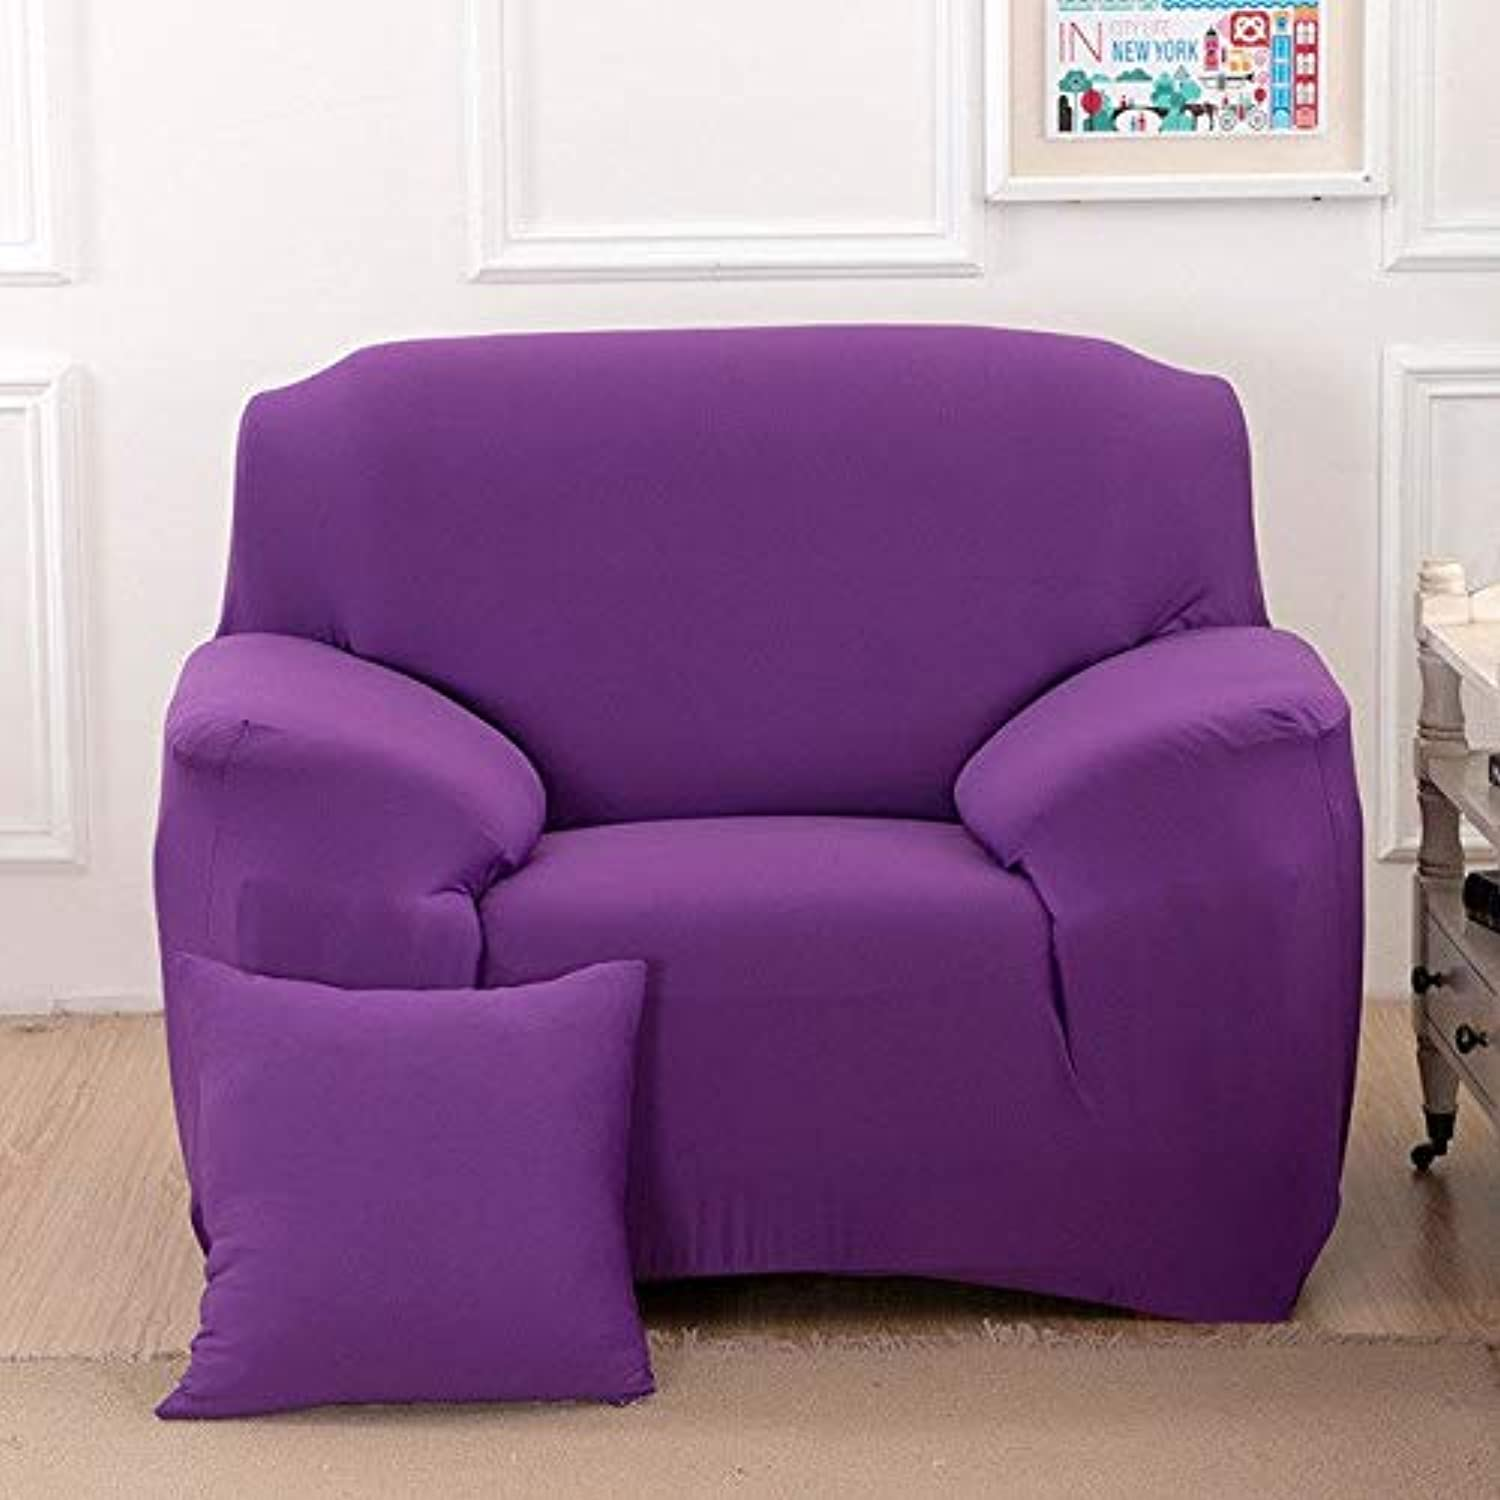 Spandex Elastic Geometric Universal Sofa Cover L-Shape Slipcovers All-Inclusive Predector Stretch Single Couch Cover Living Room   1, Two Seater